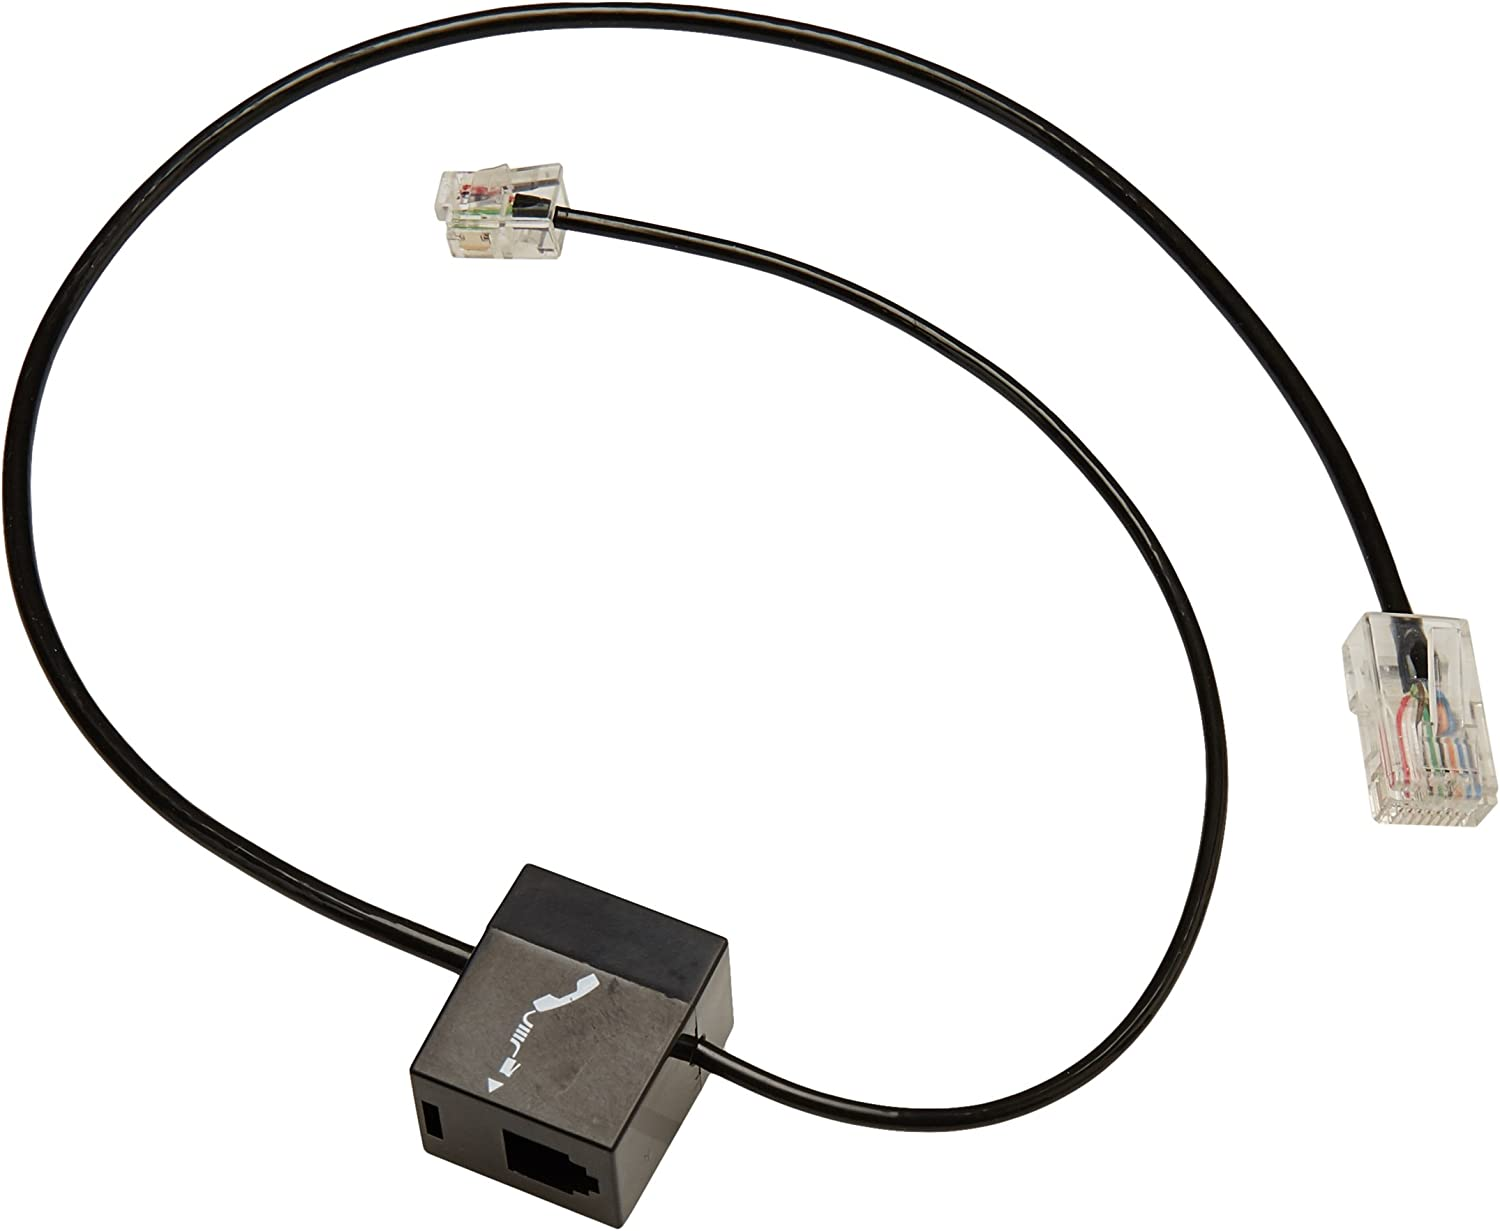 Plantronics Telephone Interface Cable (Connects Your Telephone and Your Base)